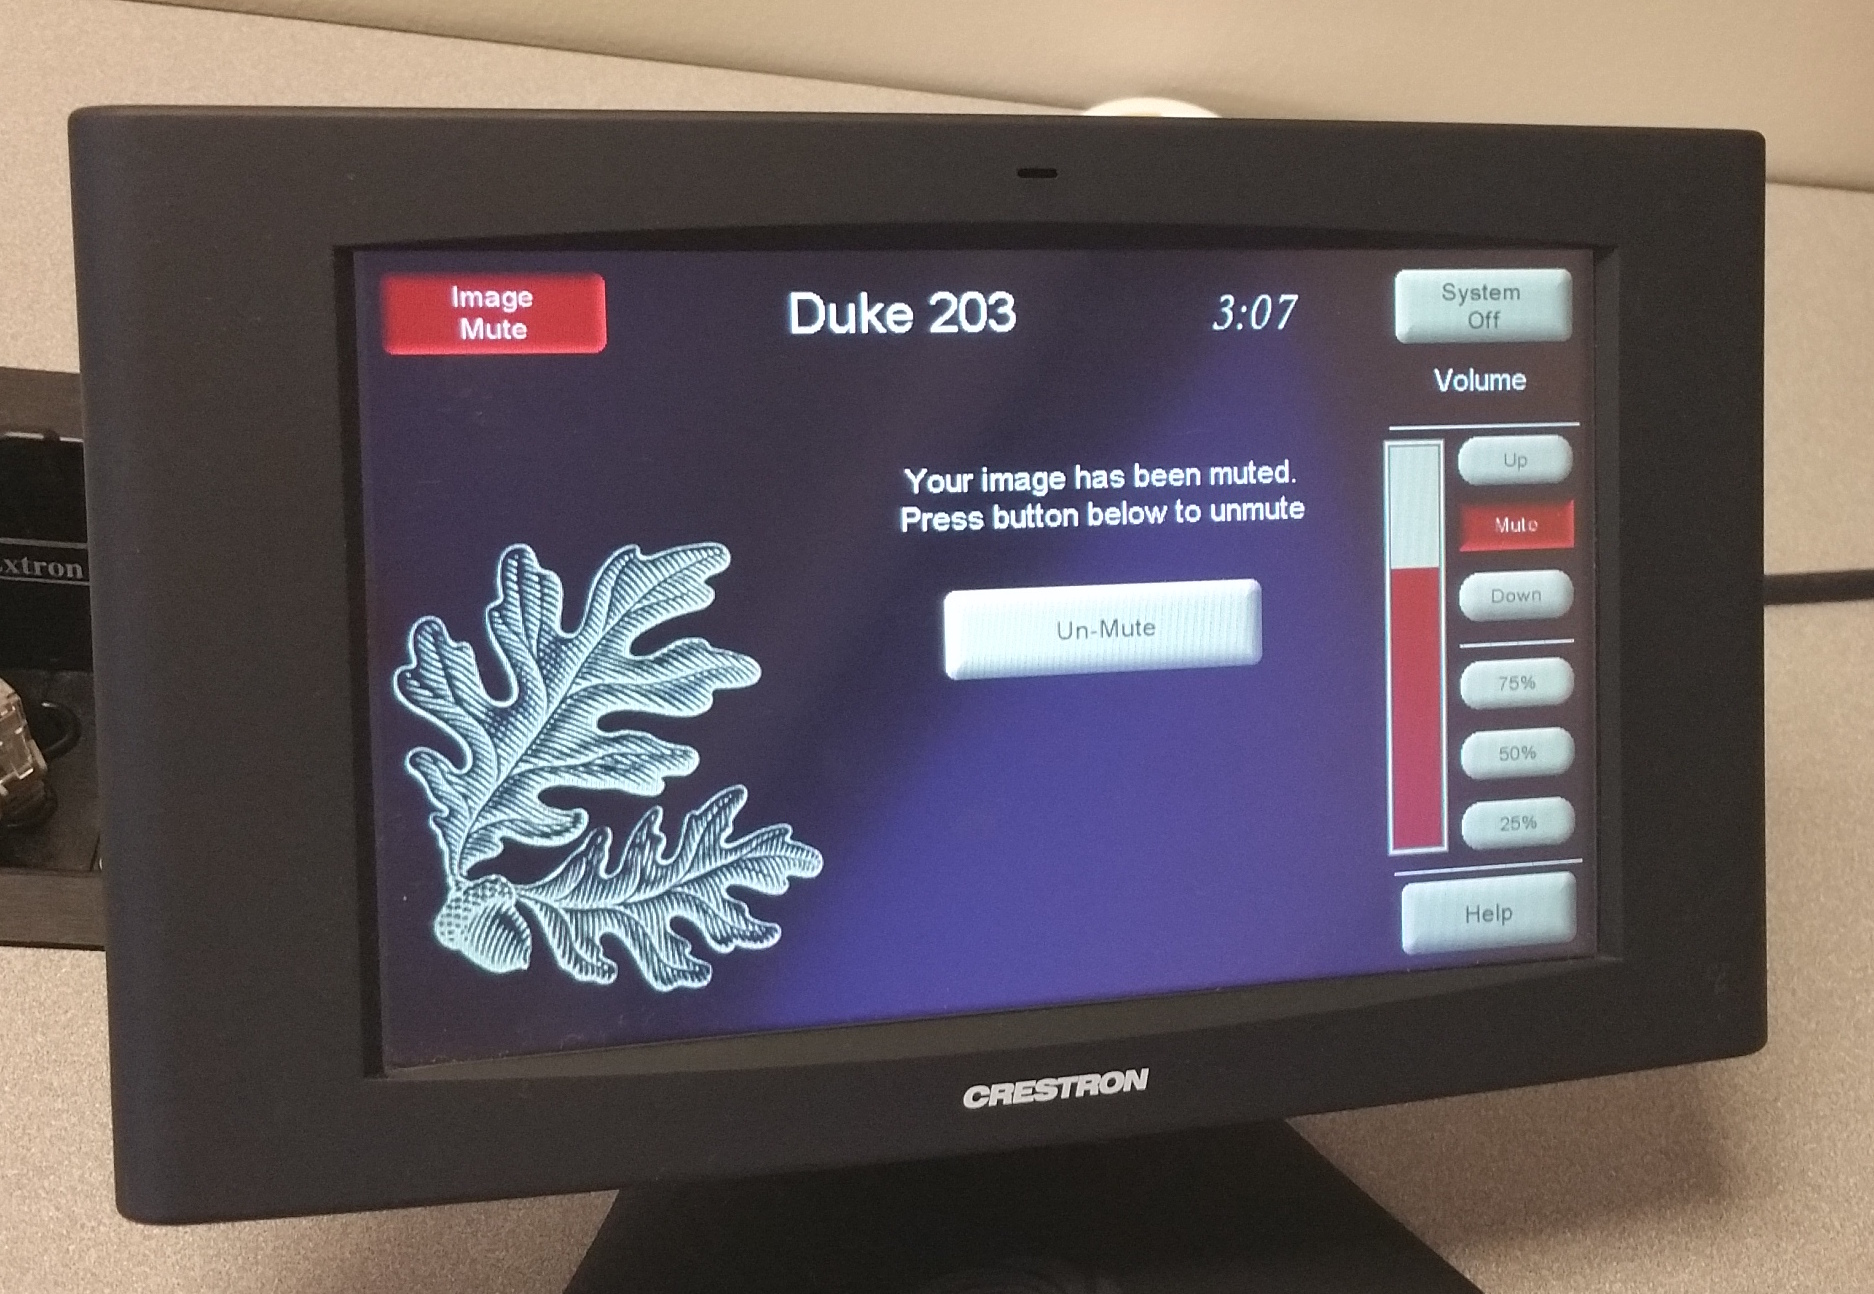 Photo of crestron control touch panel with the image mute screen showing